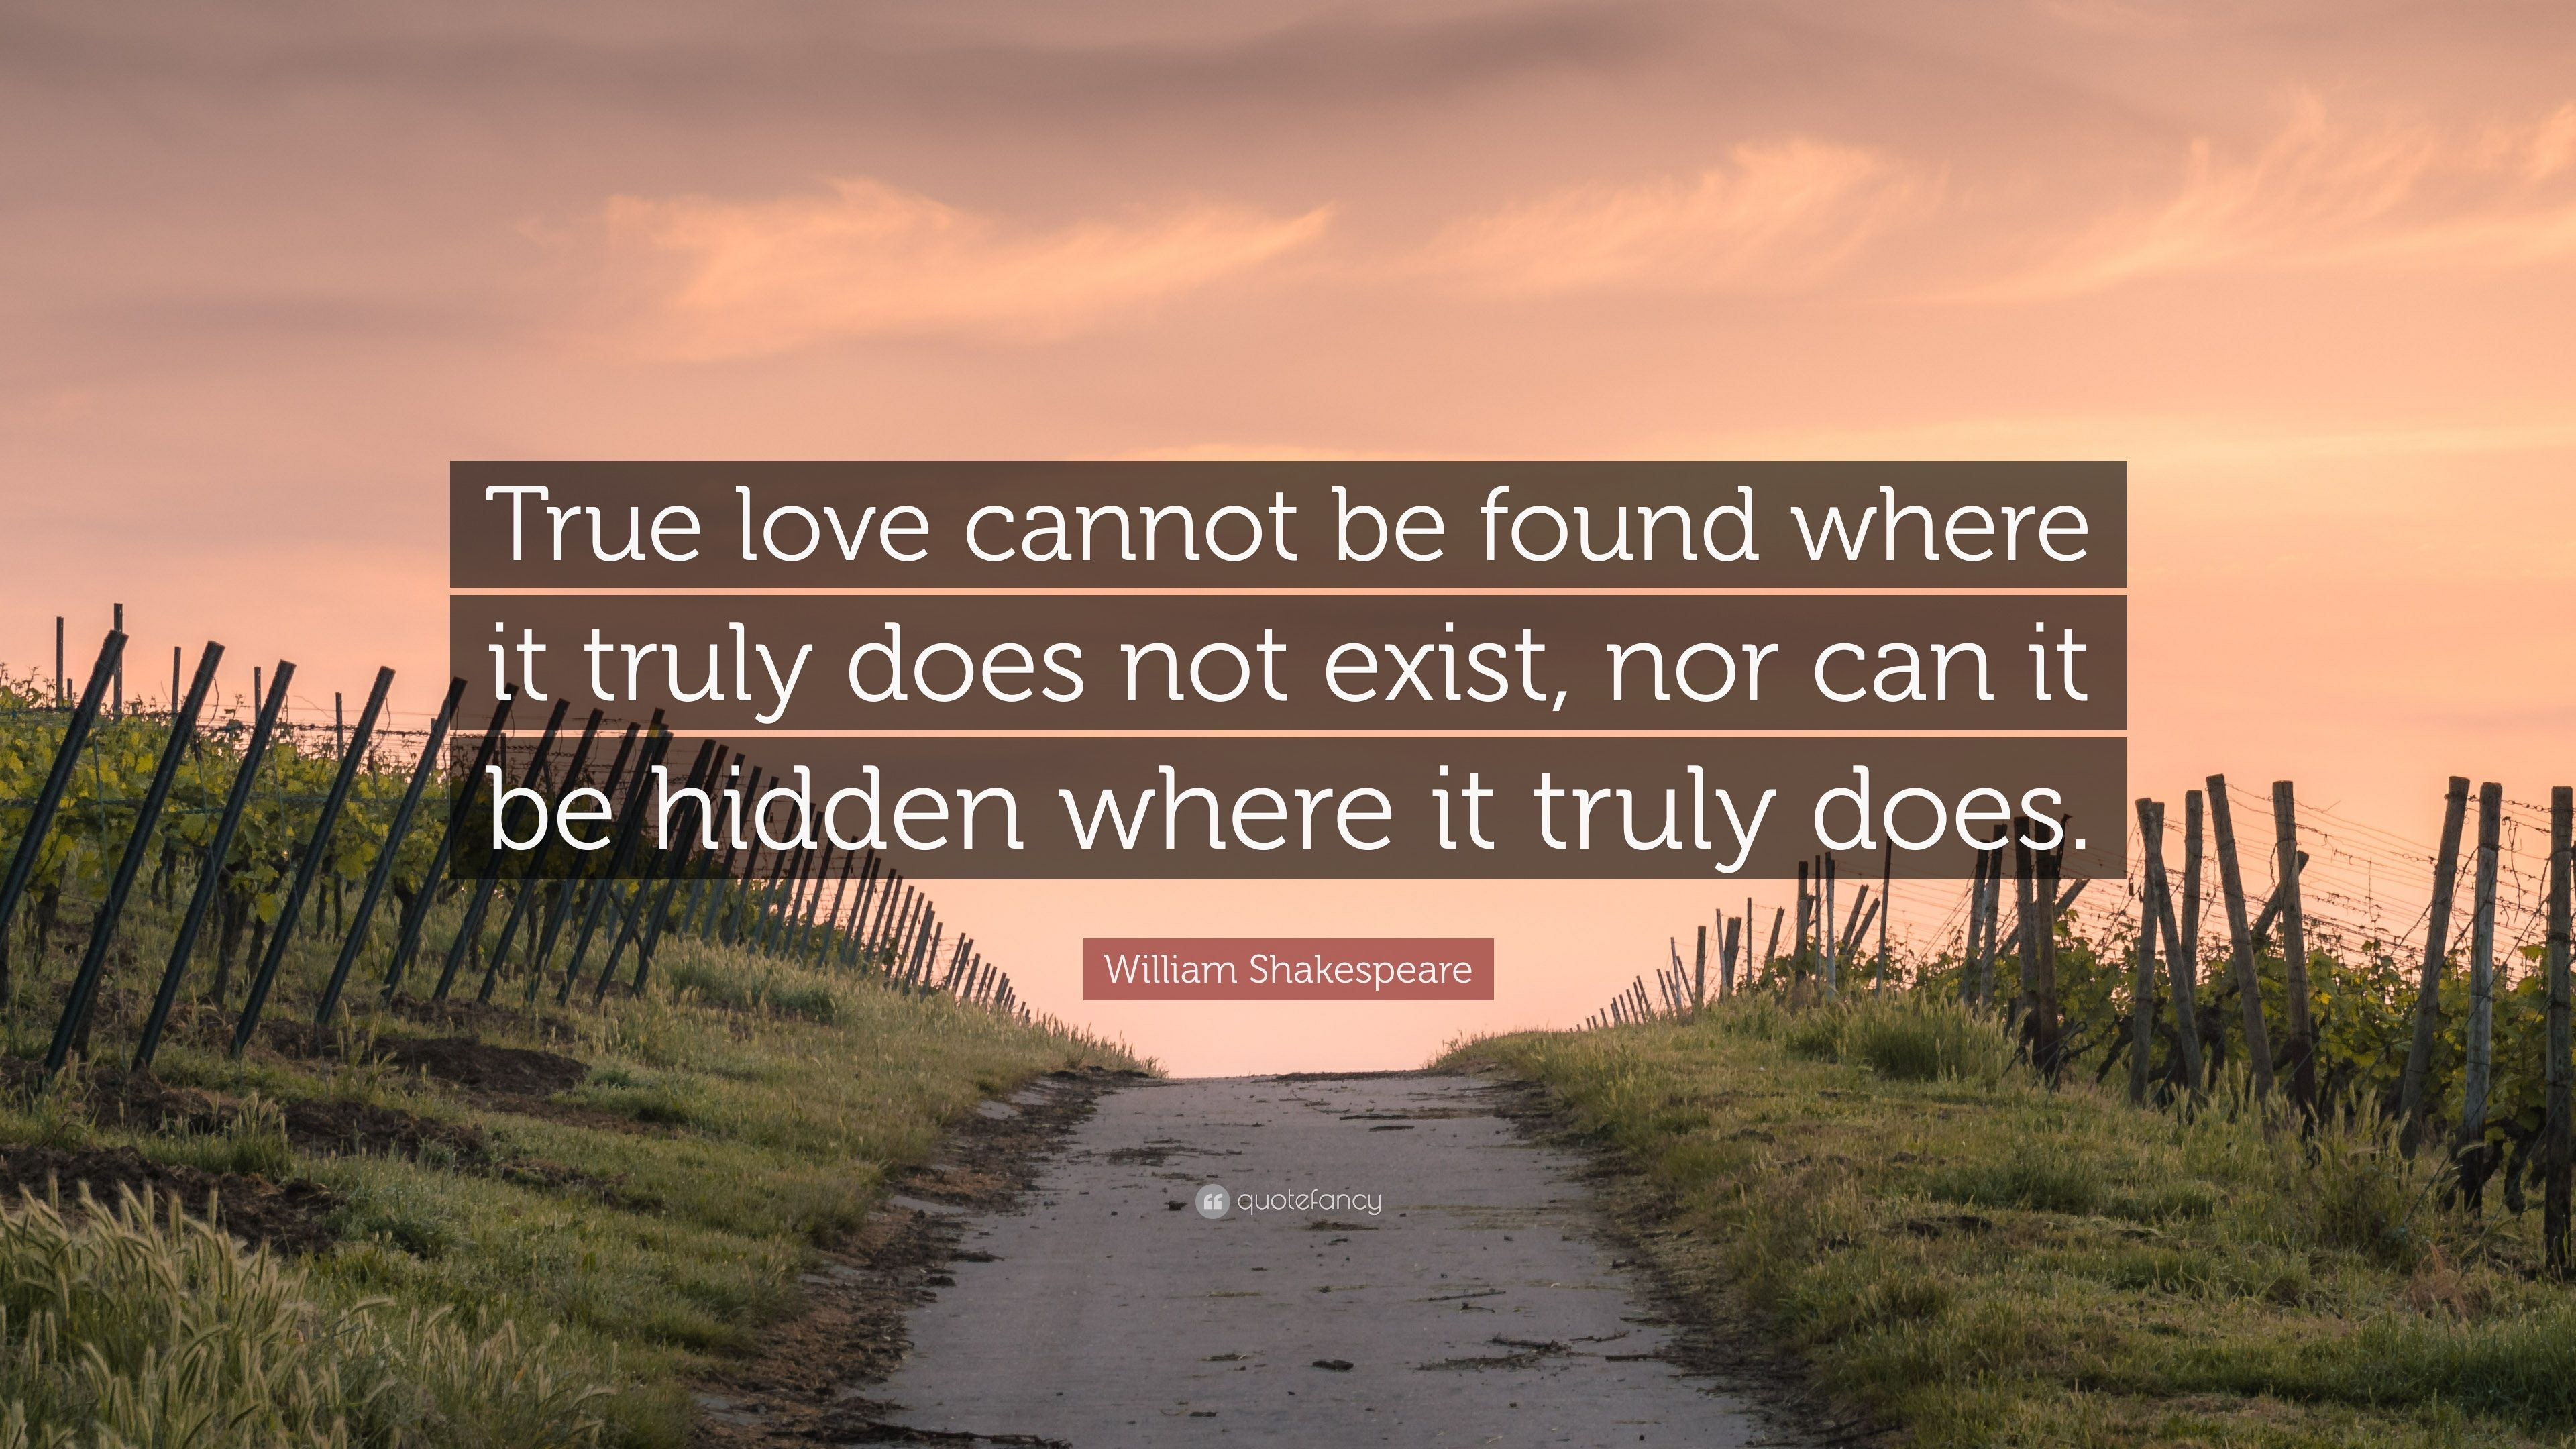 William Shakespeare Quote True Love Cannot Be Found Where It Truly Does Not Exist Nor Can It Be Hidden Where It Truly Does 9 Wallpapers Quotefancy